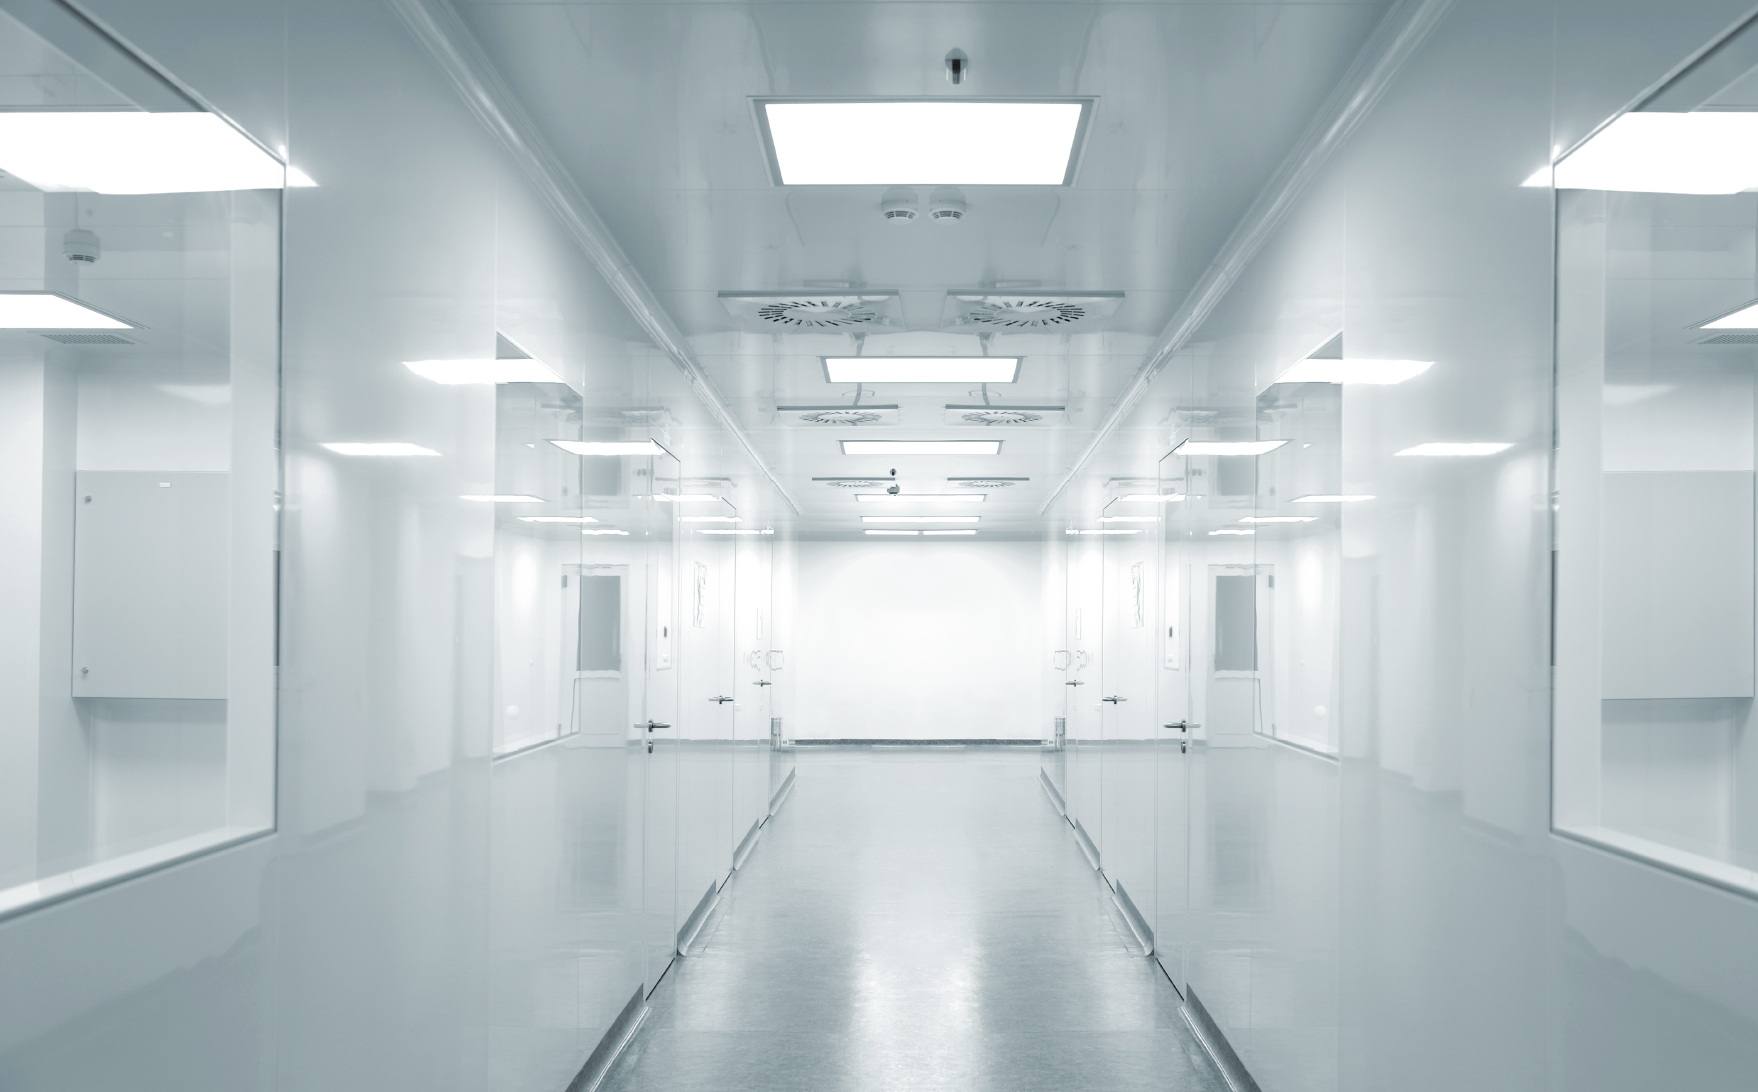 How to Choose the Right Wall and Floor Coatings for Prison Showers